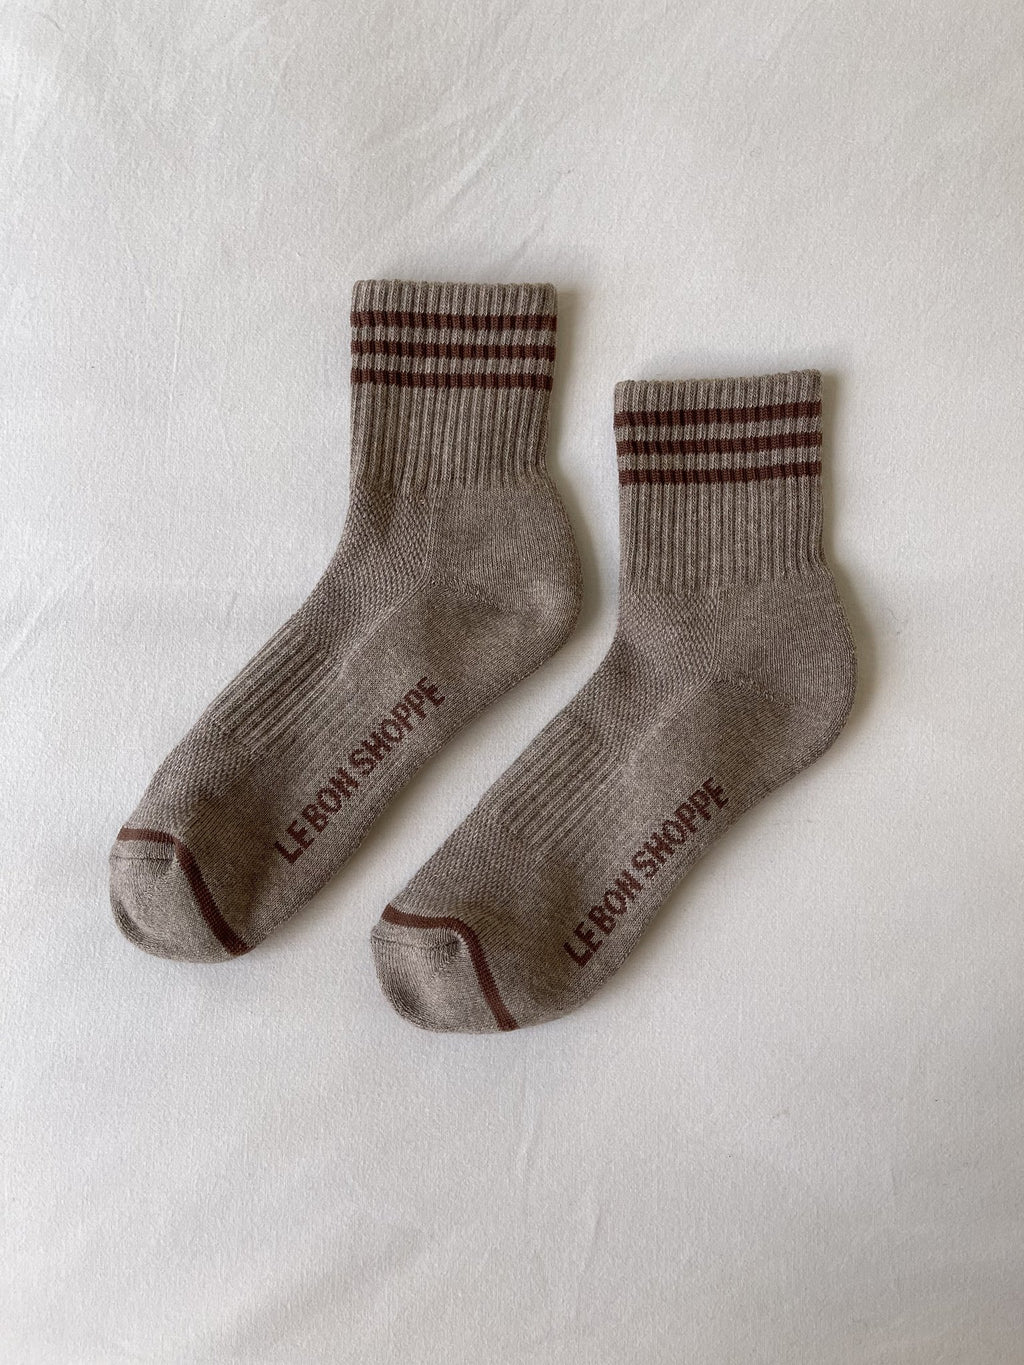 Le Bon Shoppe - Girlfriend Socks (Hazelwood)